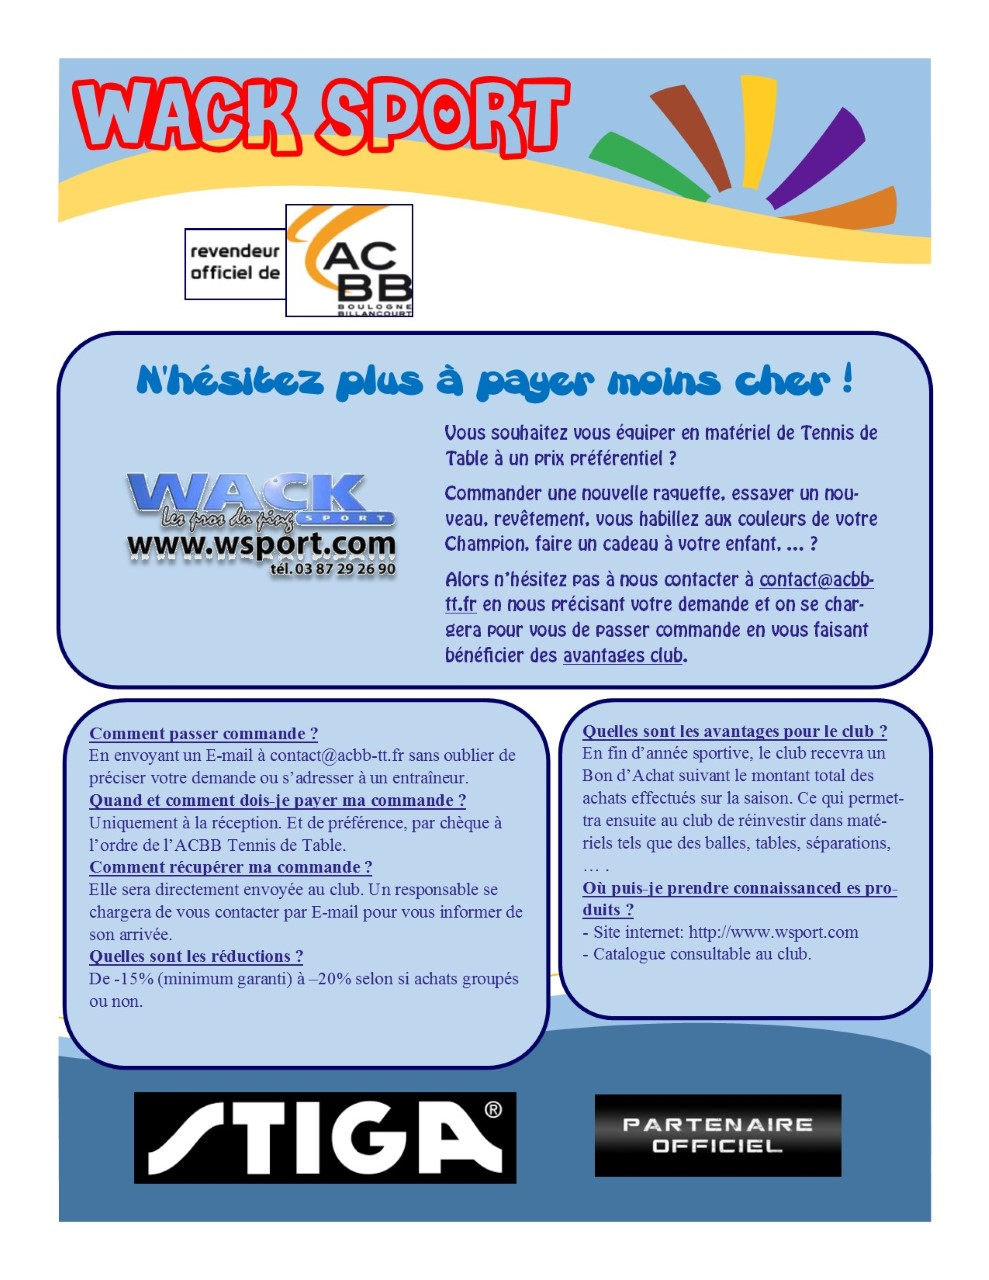 Wack Sport Tennis De Table Partenariat Wack Sport